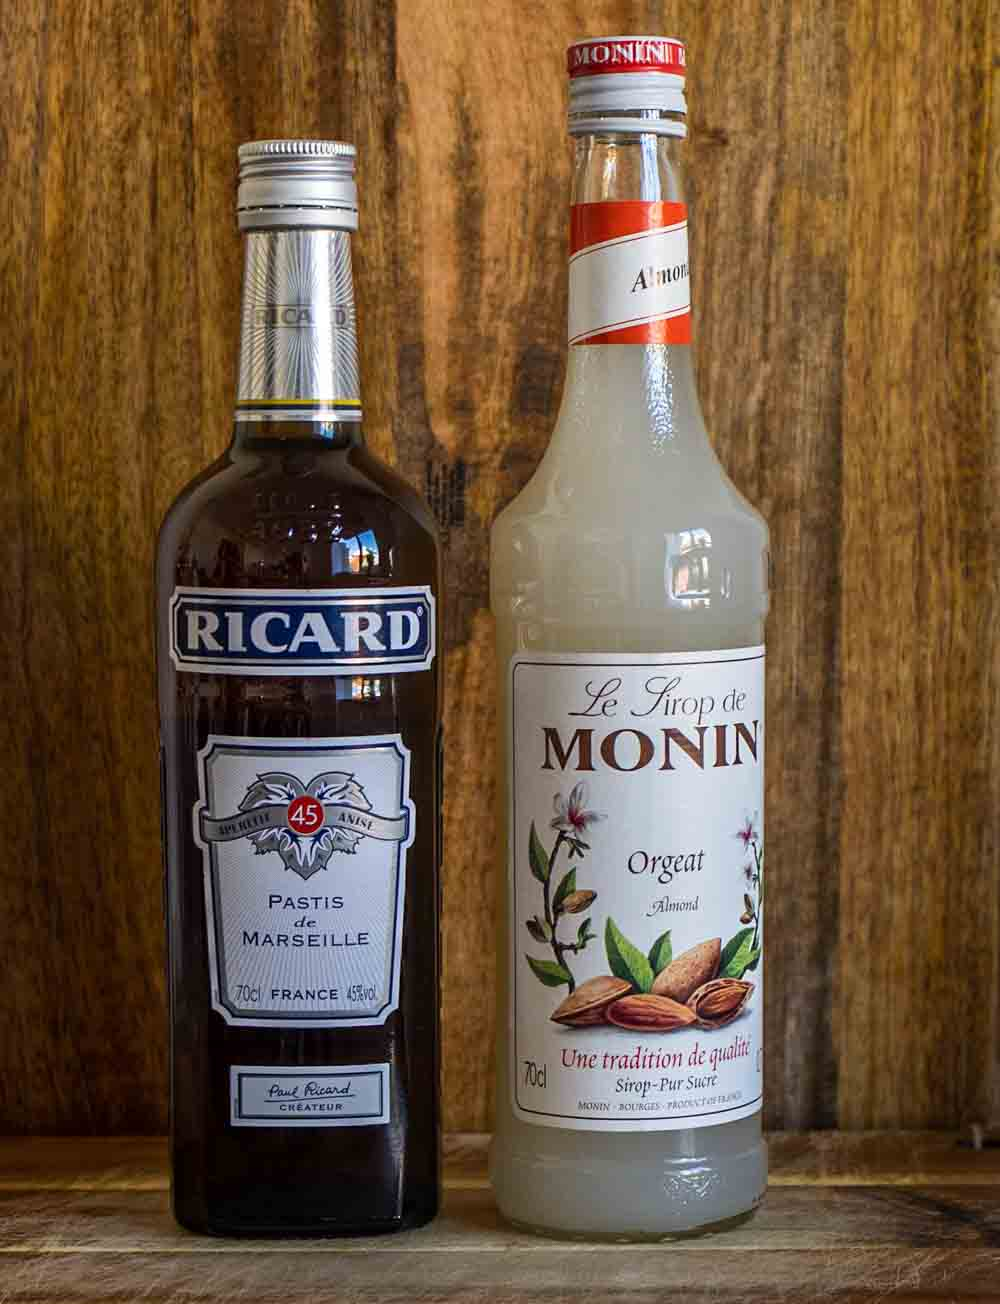 Bottles of Pastis and Orgeat